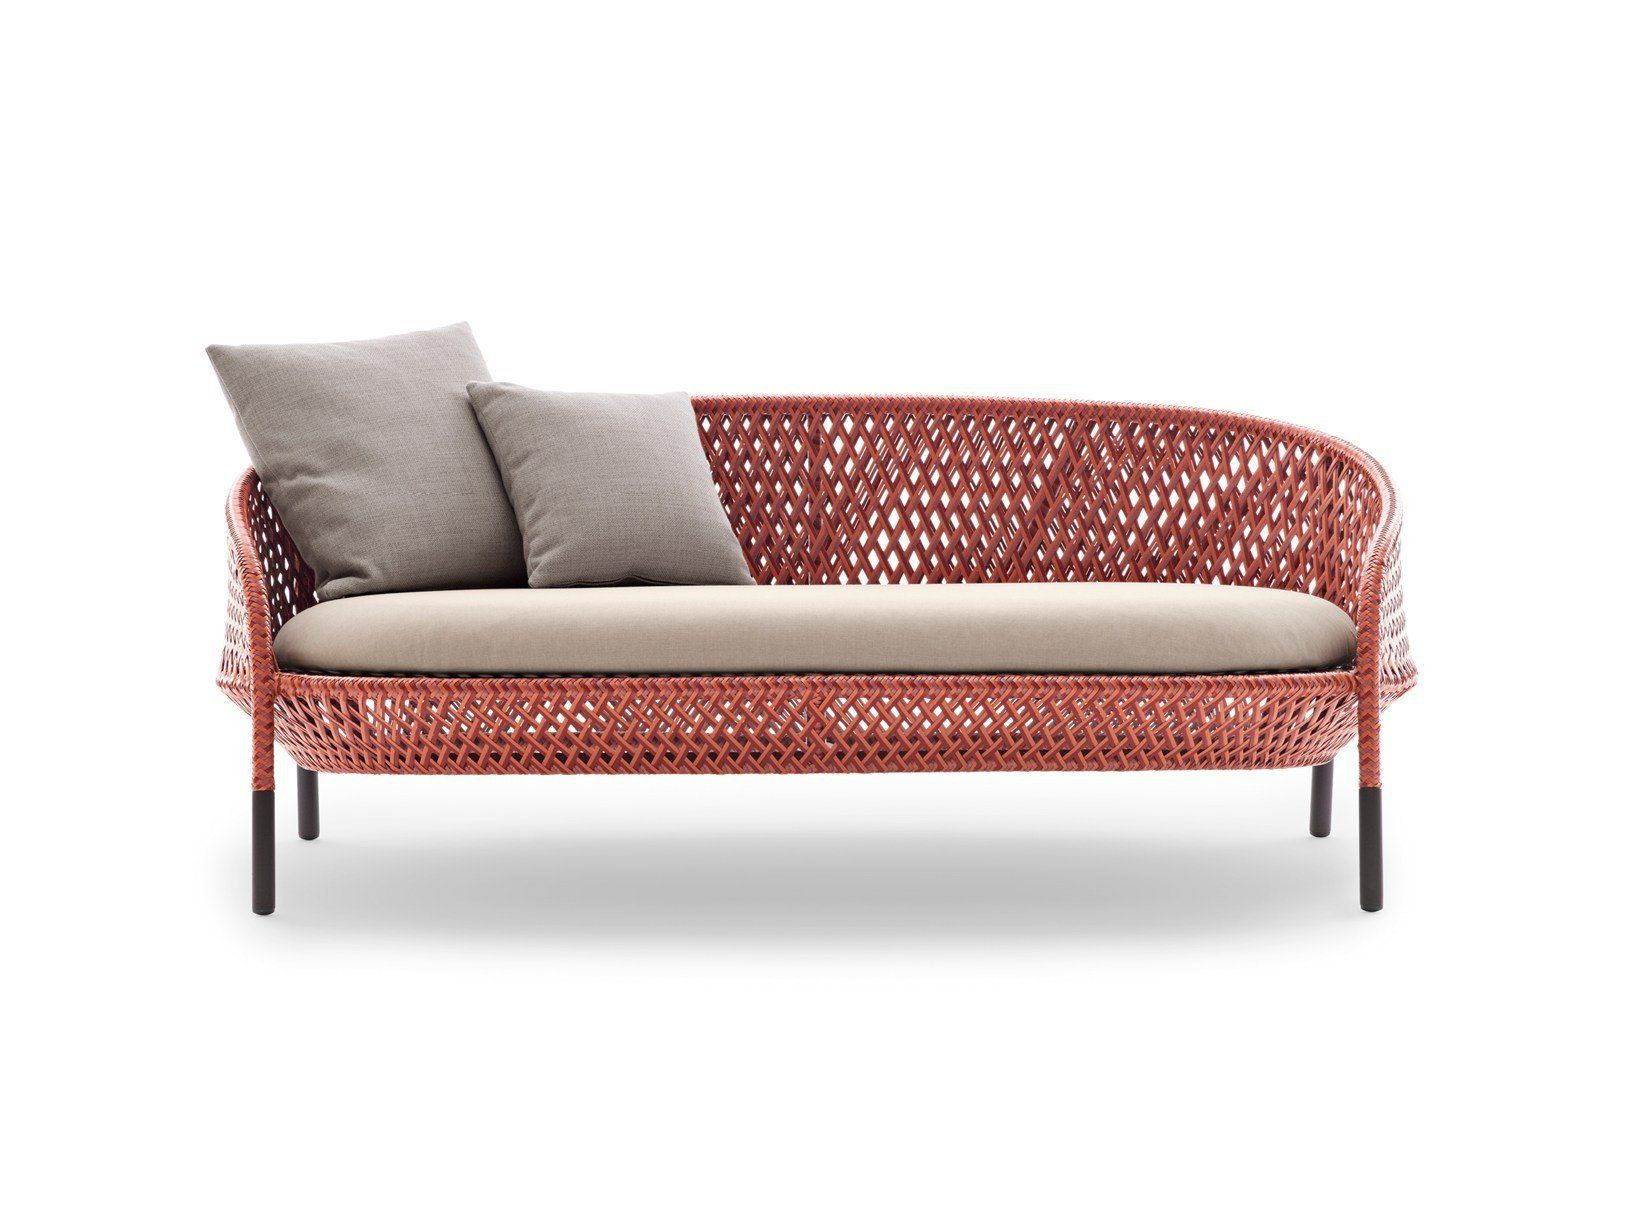 AHNDA: a classic, iconic and luxurious lounger in alluring vibrancy